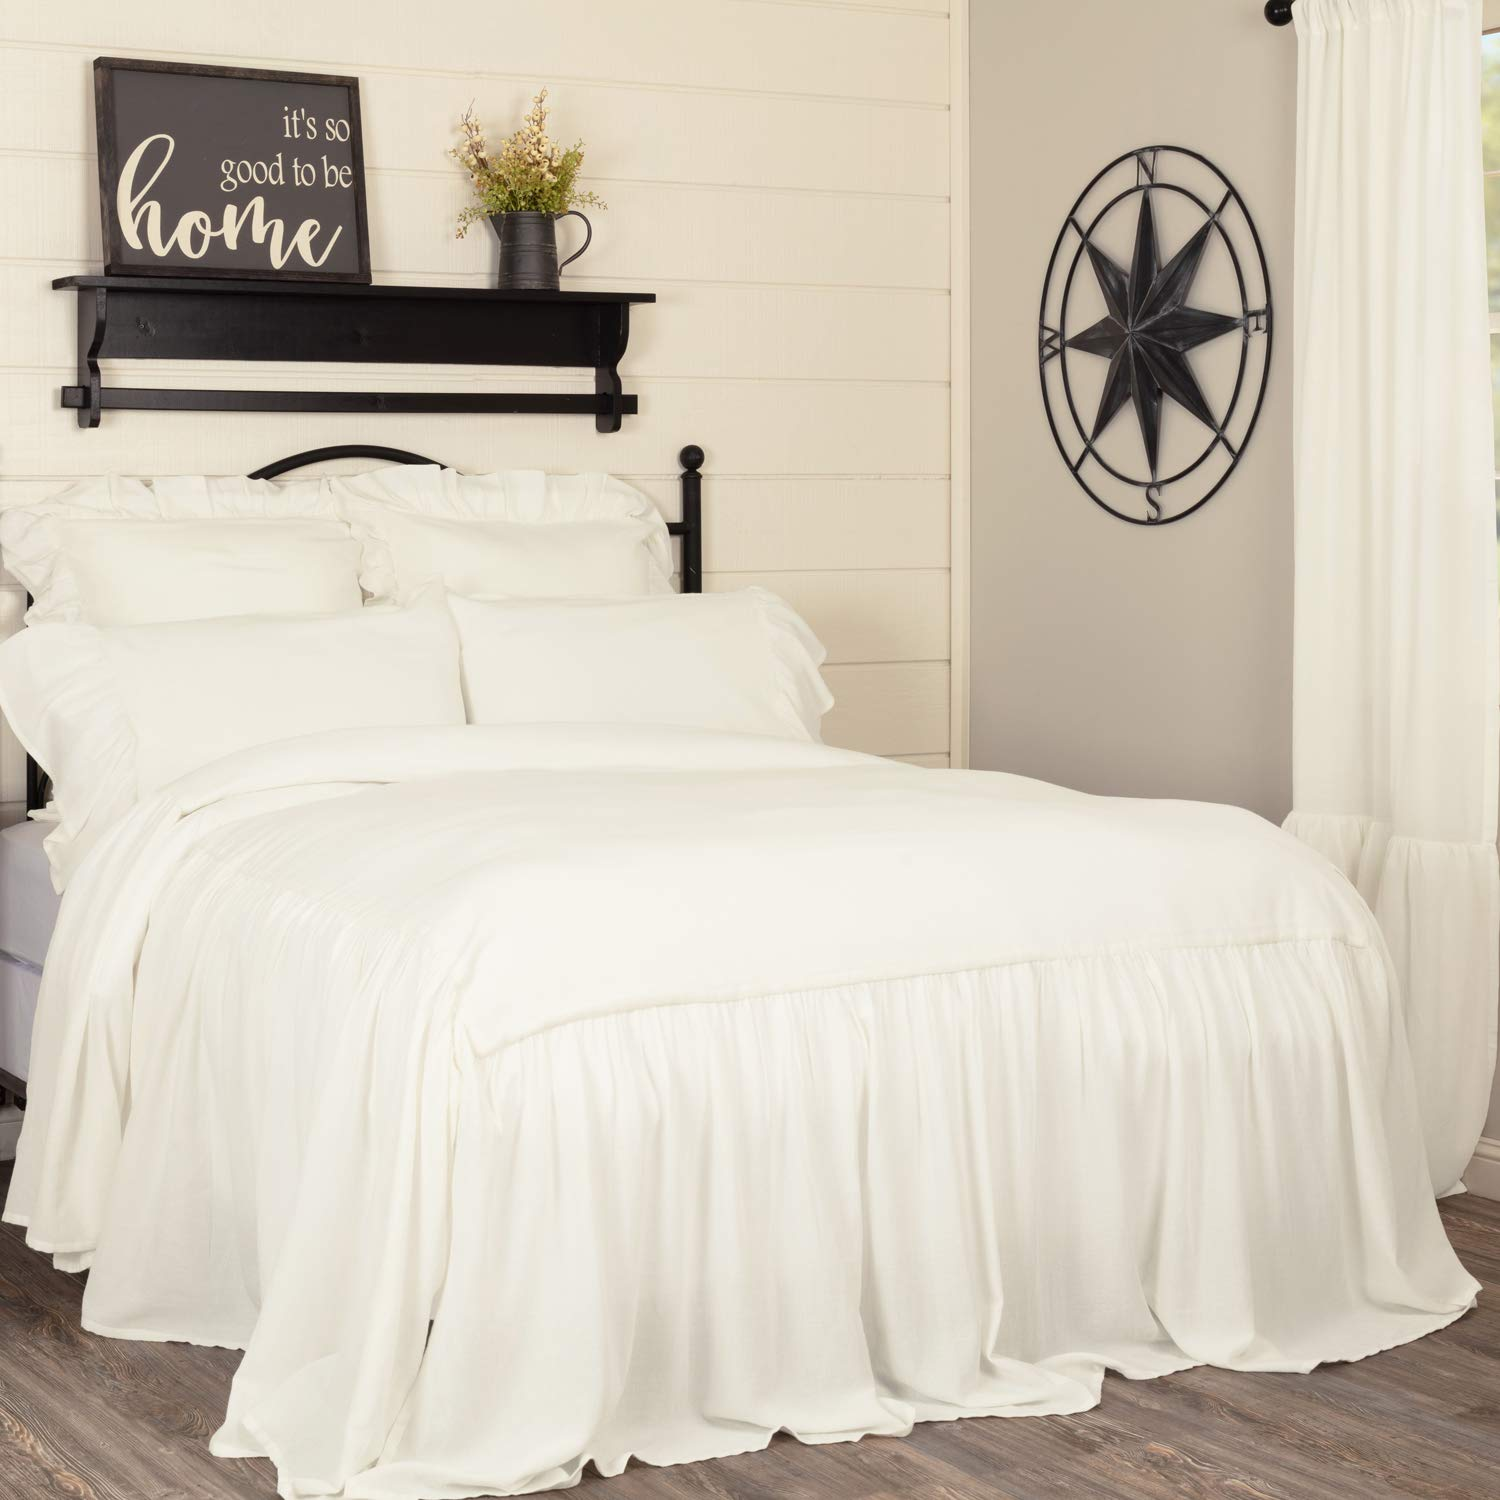 Piper Classics Annabelle Ruffled Bedspread, King Size, Skirted on 3 Sides, Antique Soft White, Lightweight, Farmhouse Style Bedding by Piper Classics